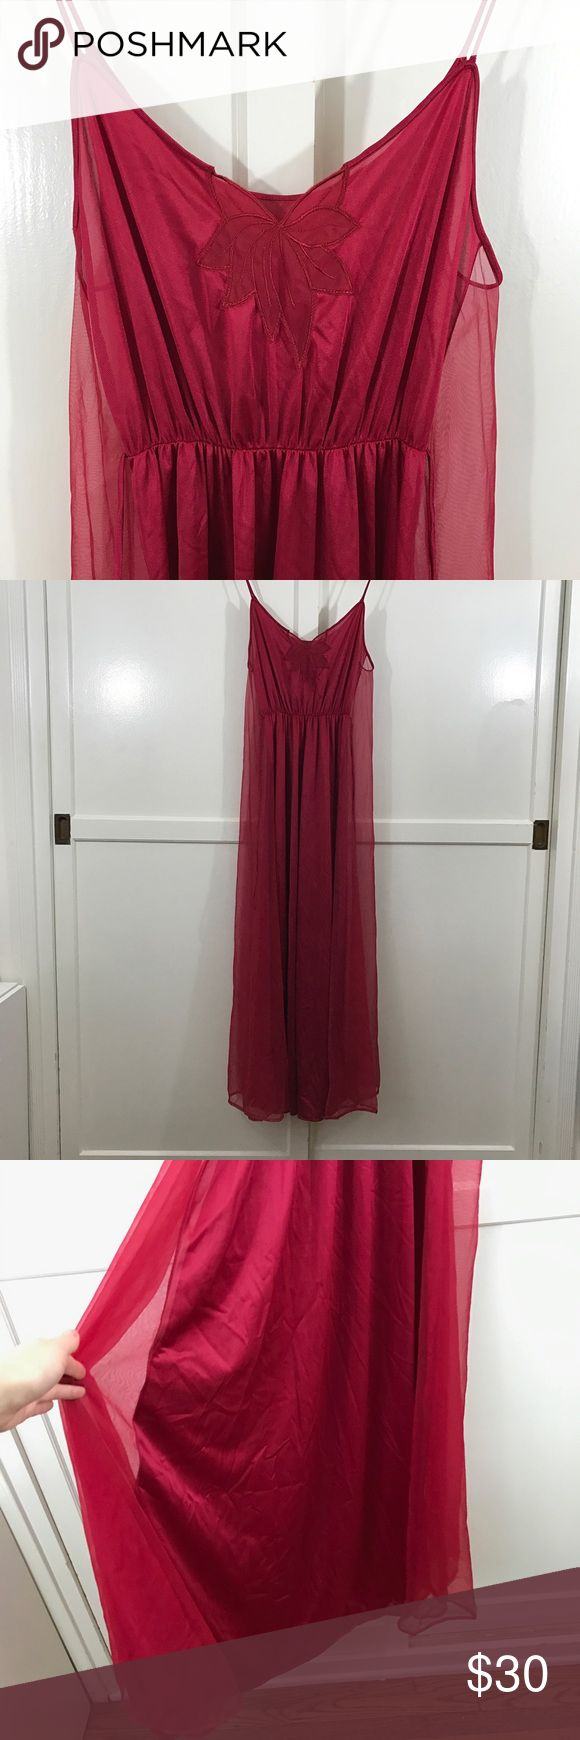 Red summer dress song just breathe